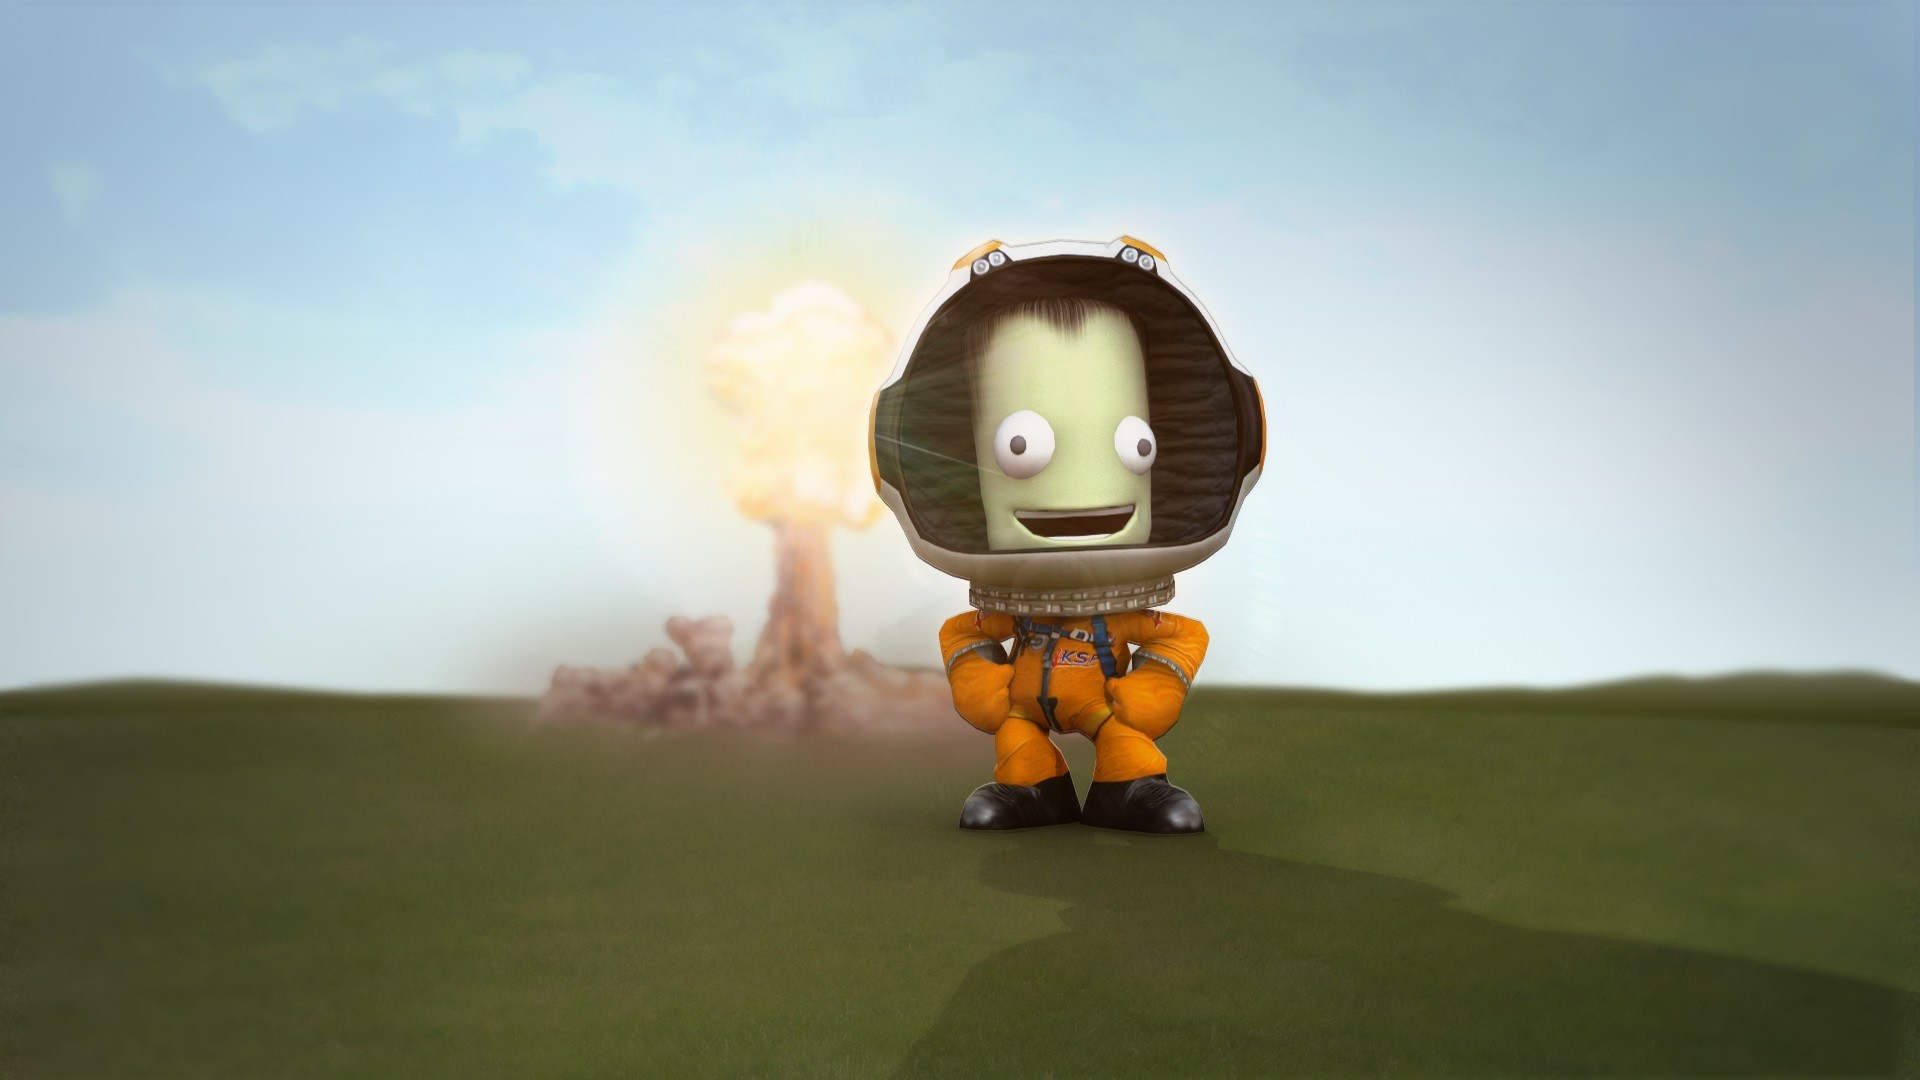 Valve hires members of the Kerbal Space Program team